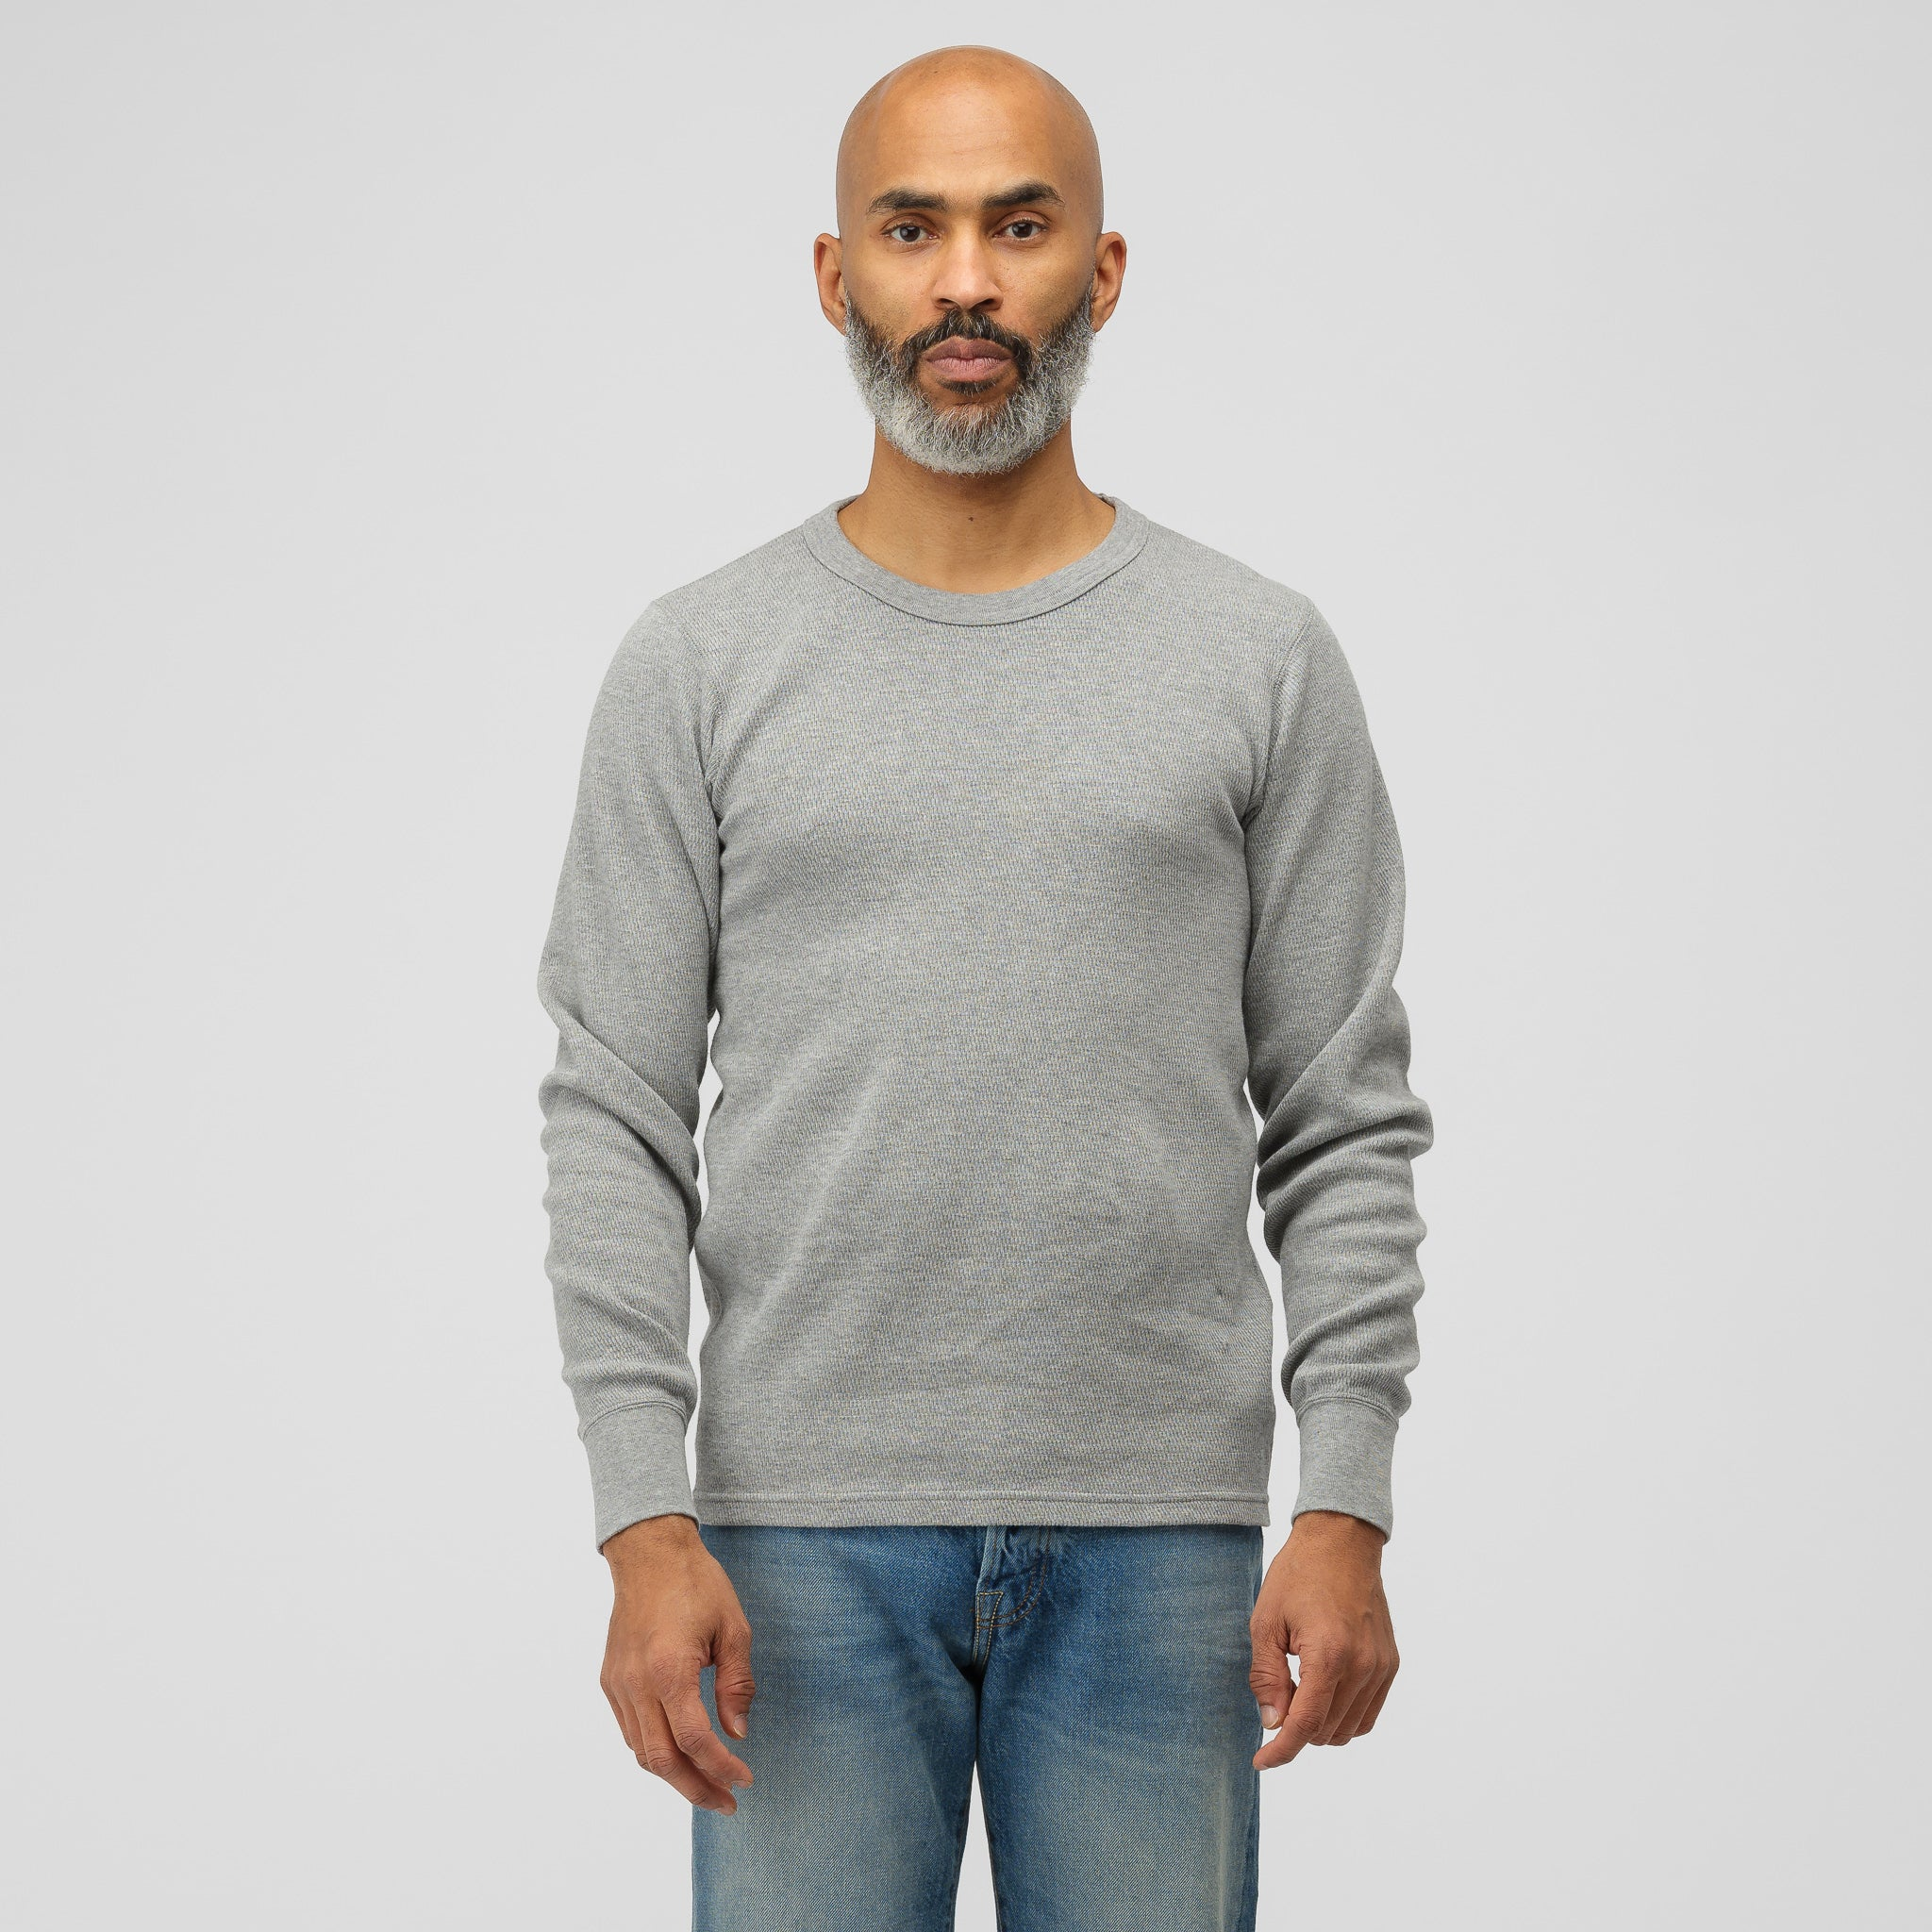 Sublig Thermal Crew 3-Pack in Grey